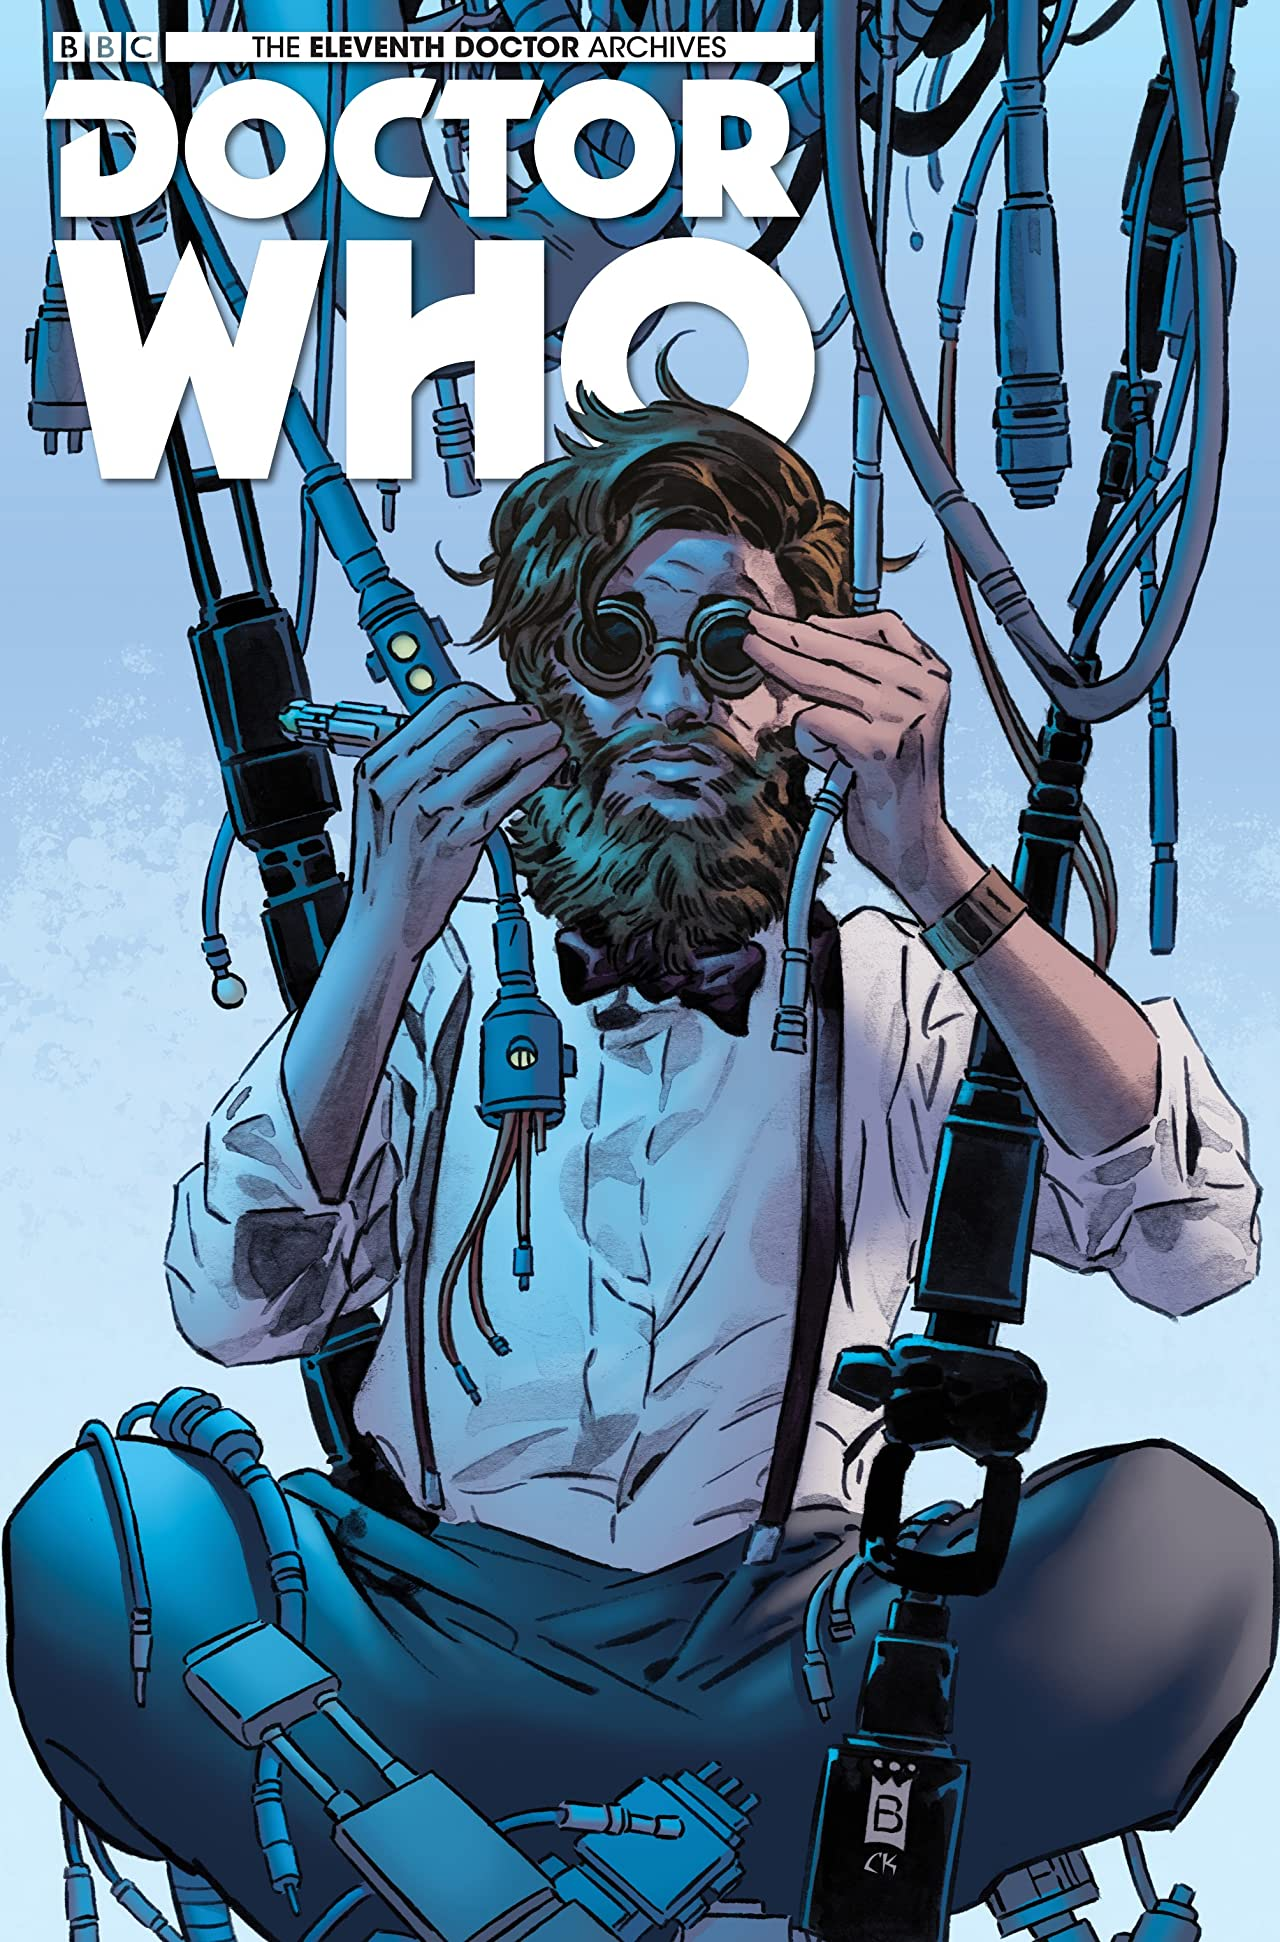 Doctor Who: The Eleventh Doctor Archives #32